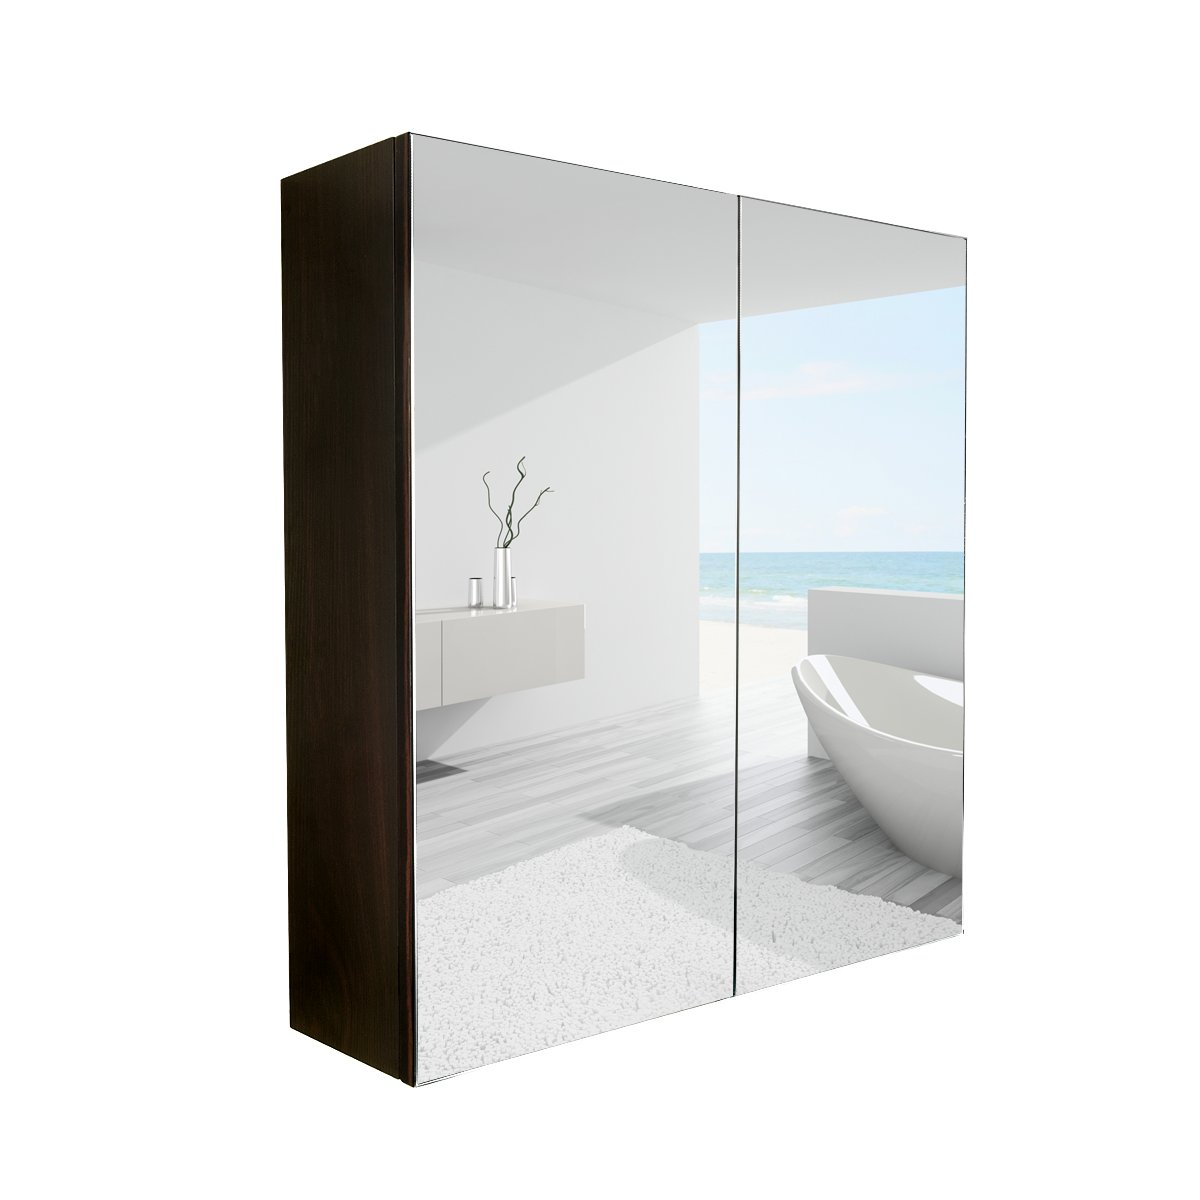 PULUOMIS 24 Inches Wide Wall Mount Mirrored Bathroom Medicine Cabinet Storage, 2 Mirror Door, Frameless Wall Mirror, Vanity Mirror, Restroom Mirror by PULUOMIS